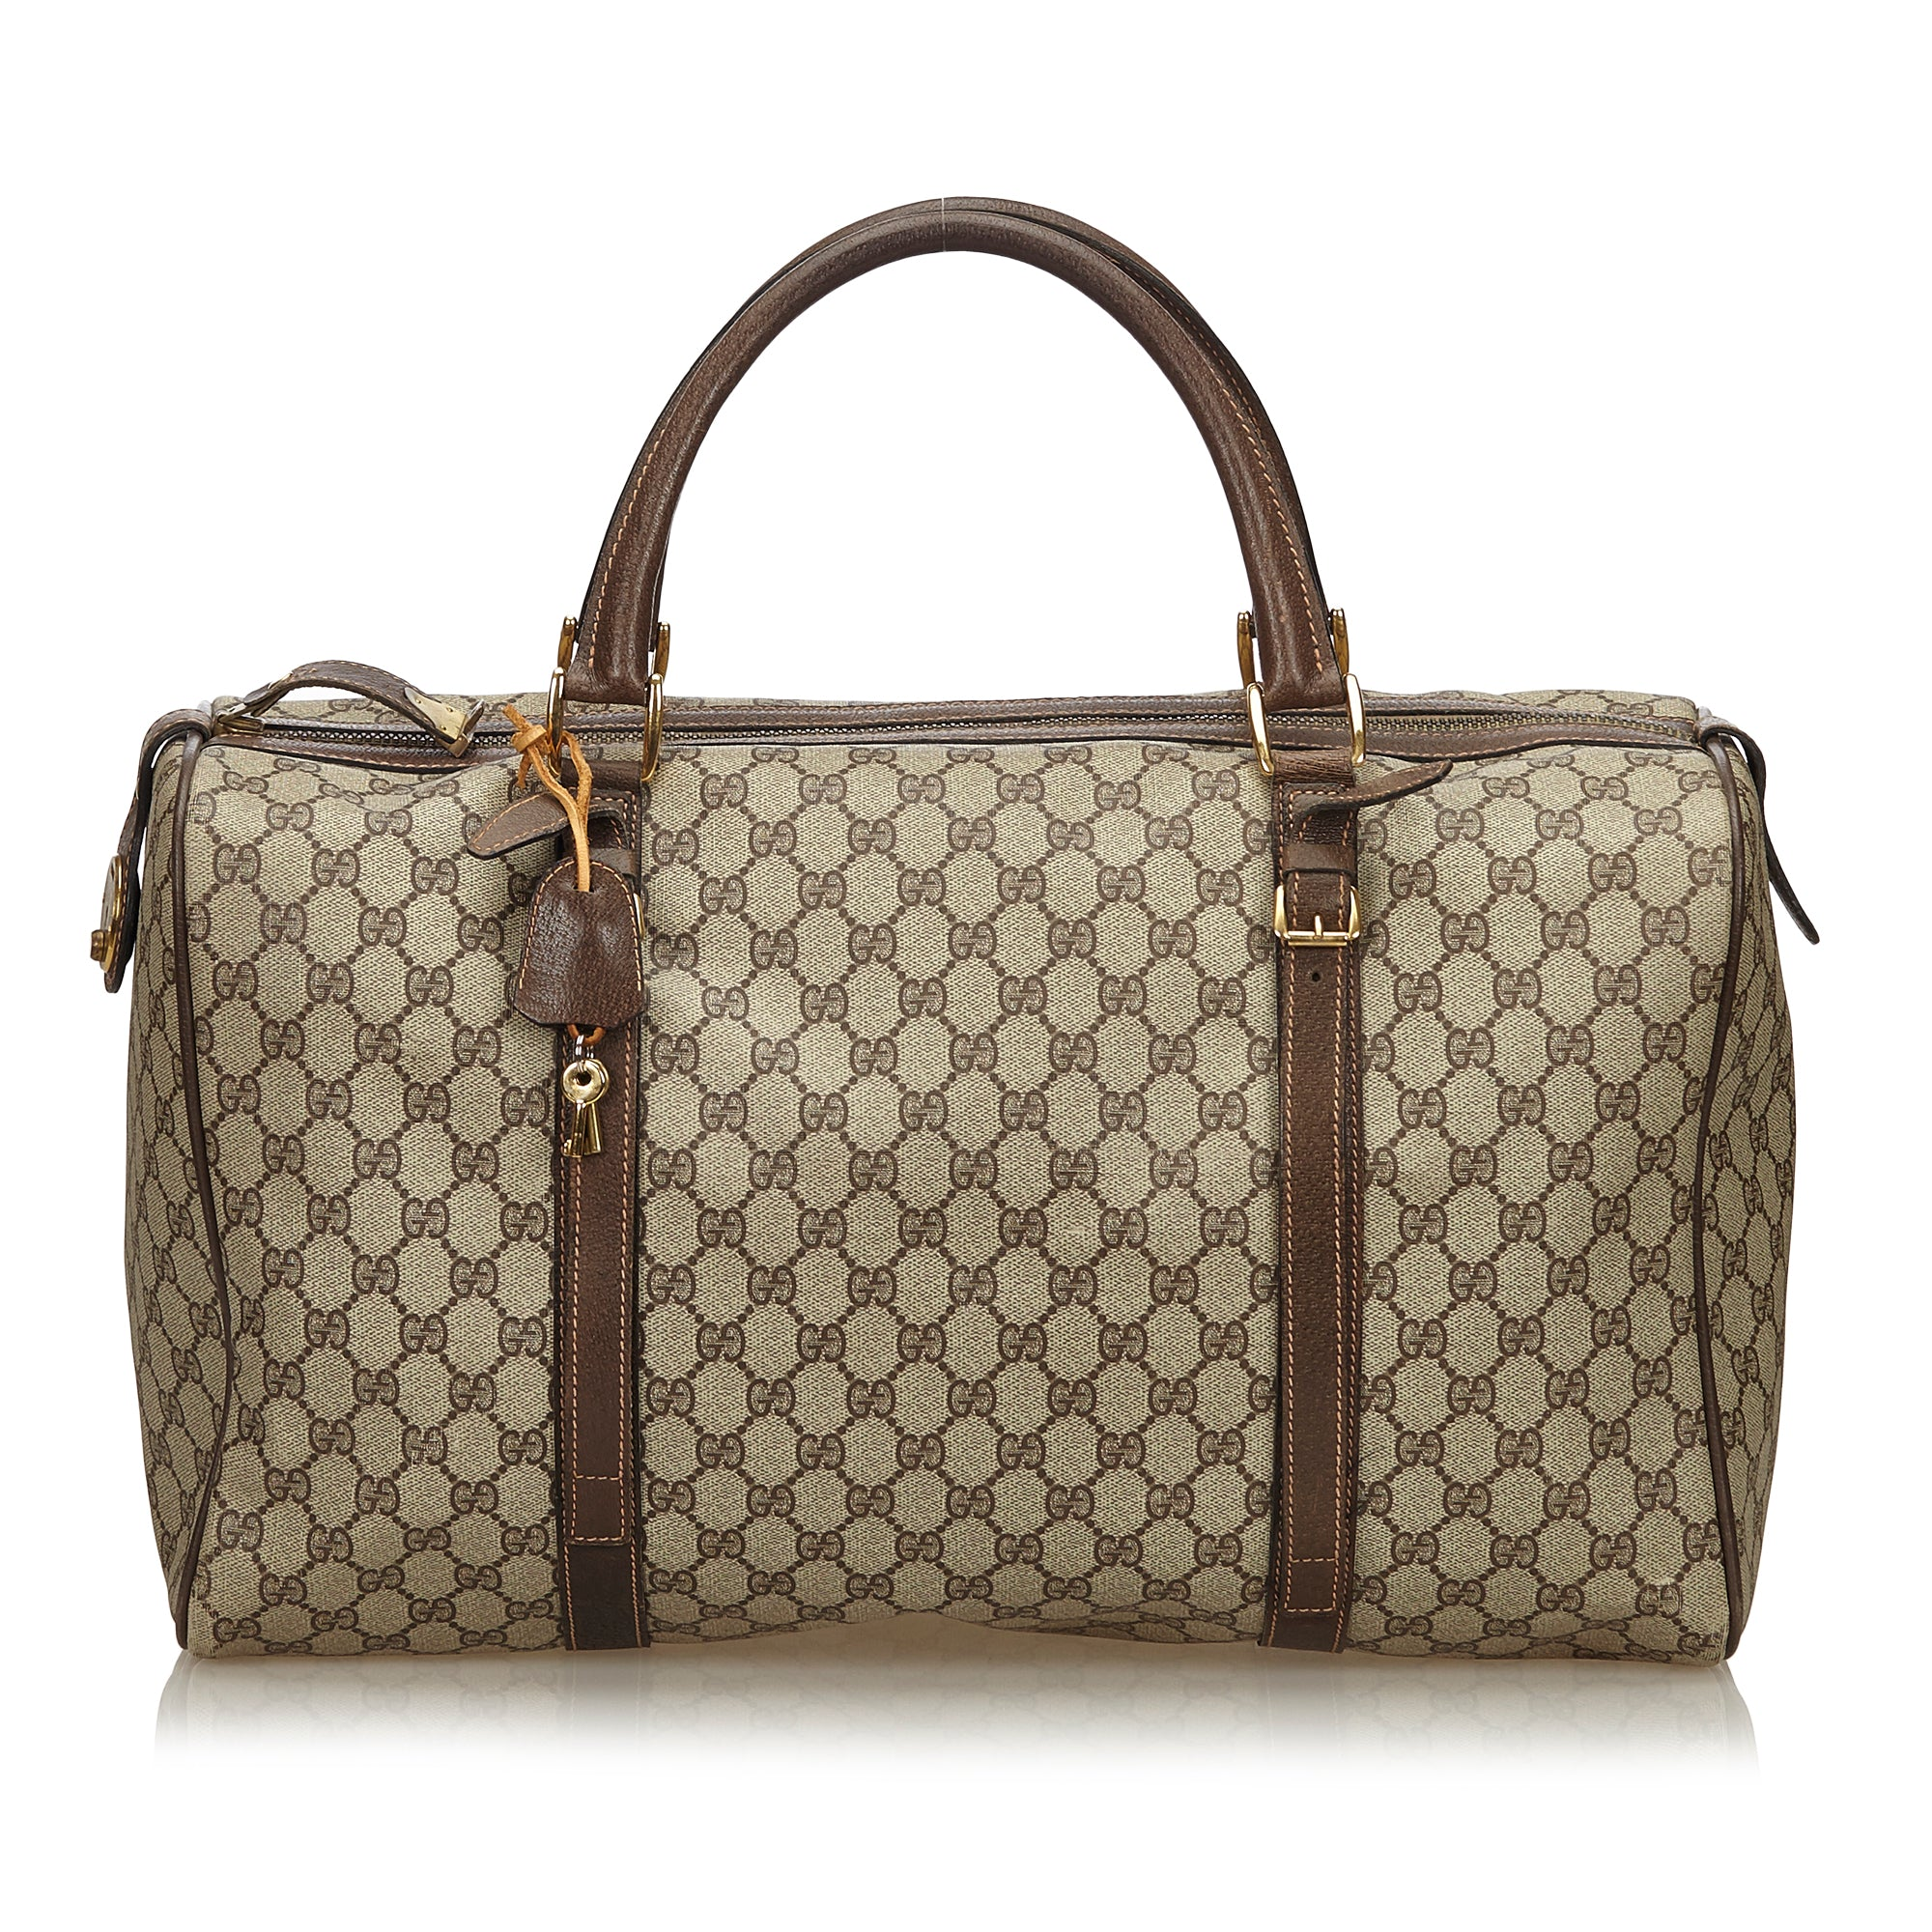 ecfd1f16d93 GUCCI GG SUPREME WEEKENDER DUFFLE CARRY ON BAG Shop the best value on  authentic designer used ...